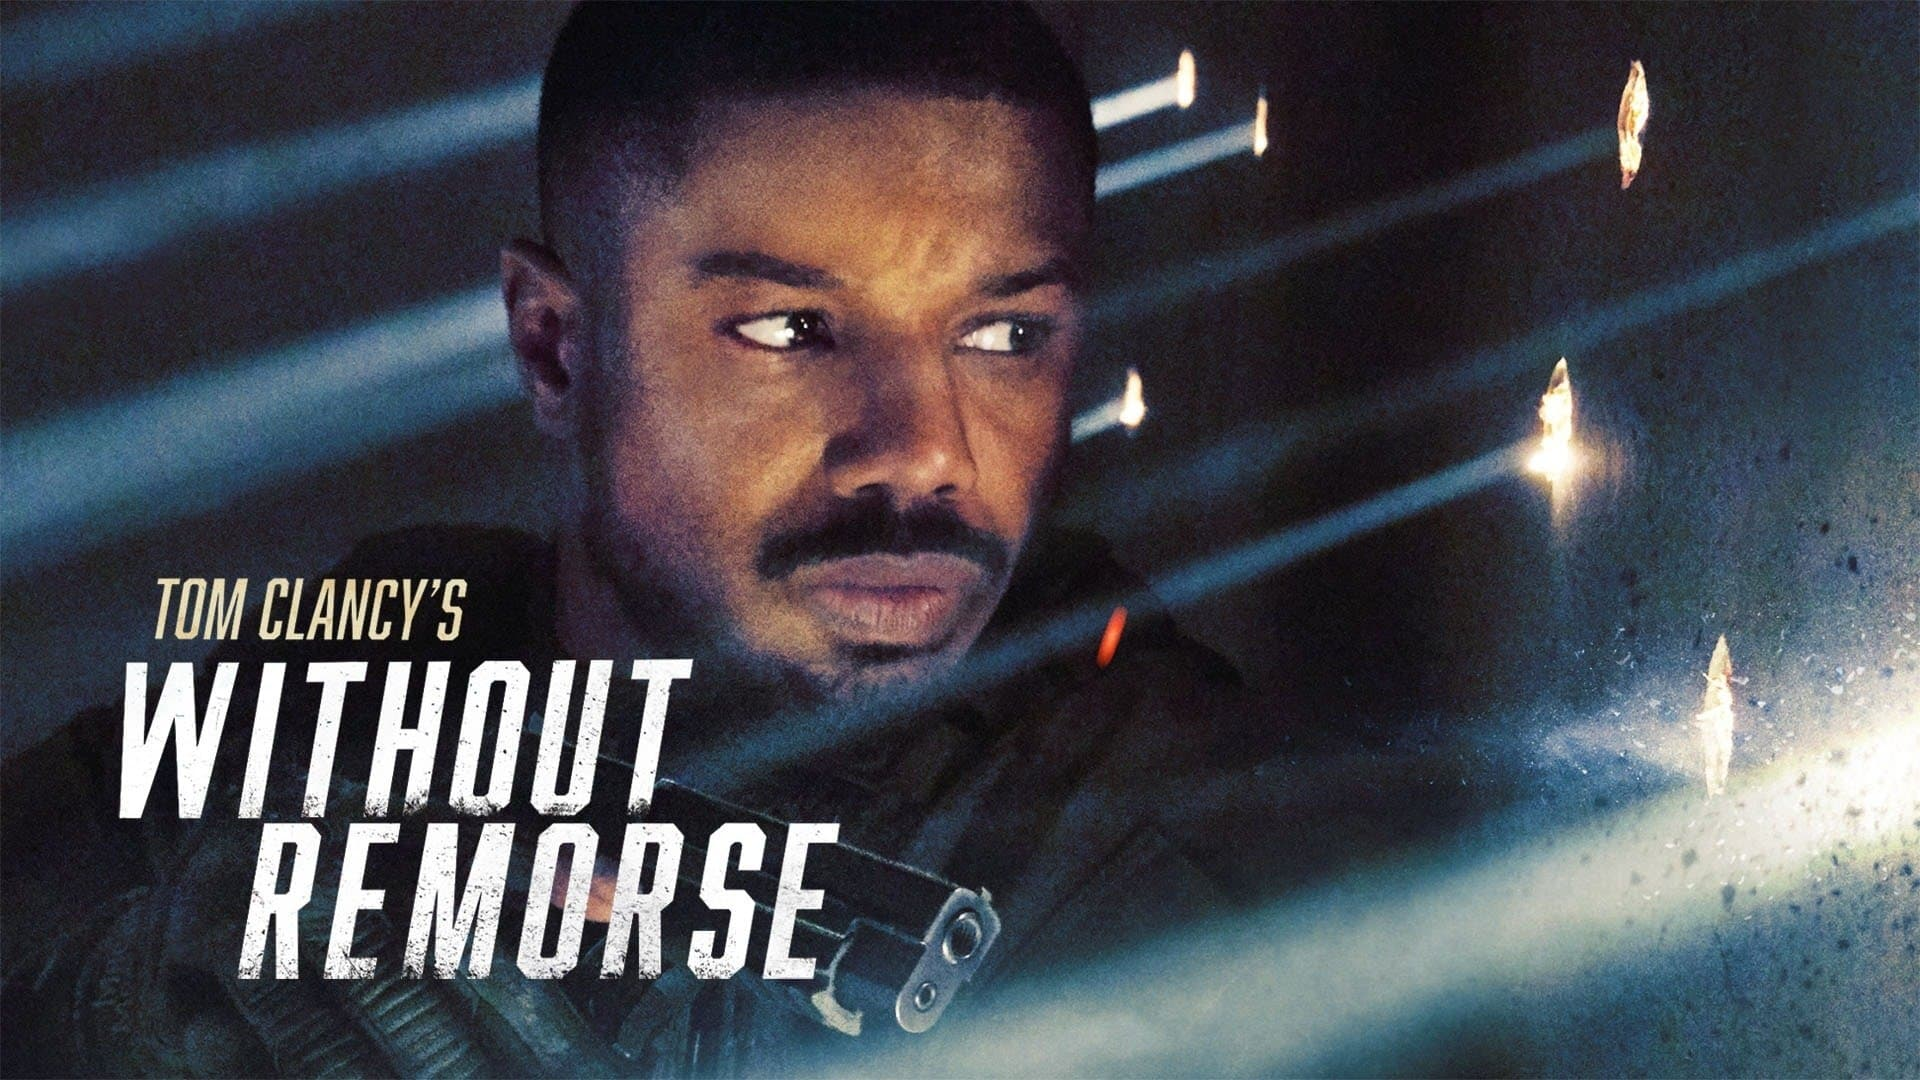 Tom Clancy's Without Remorse-poster-1